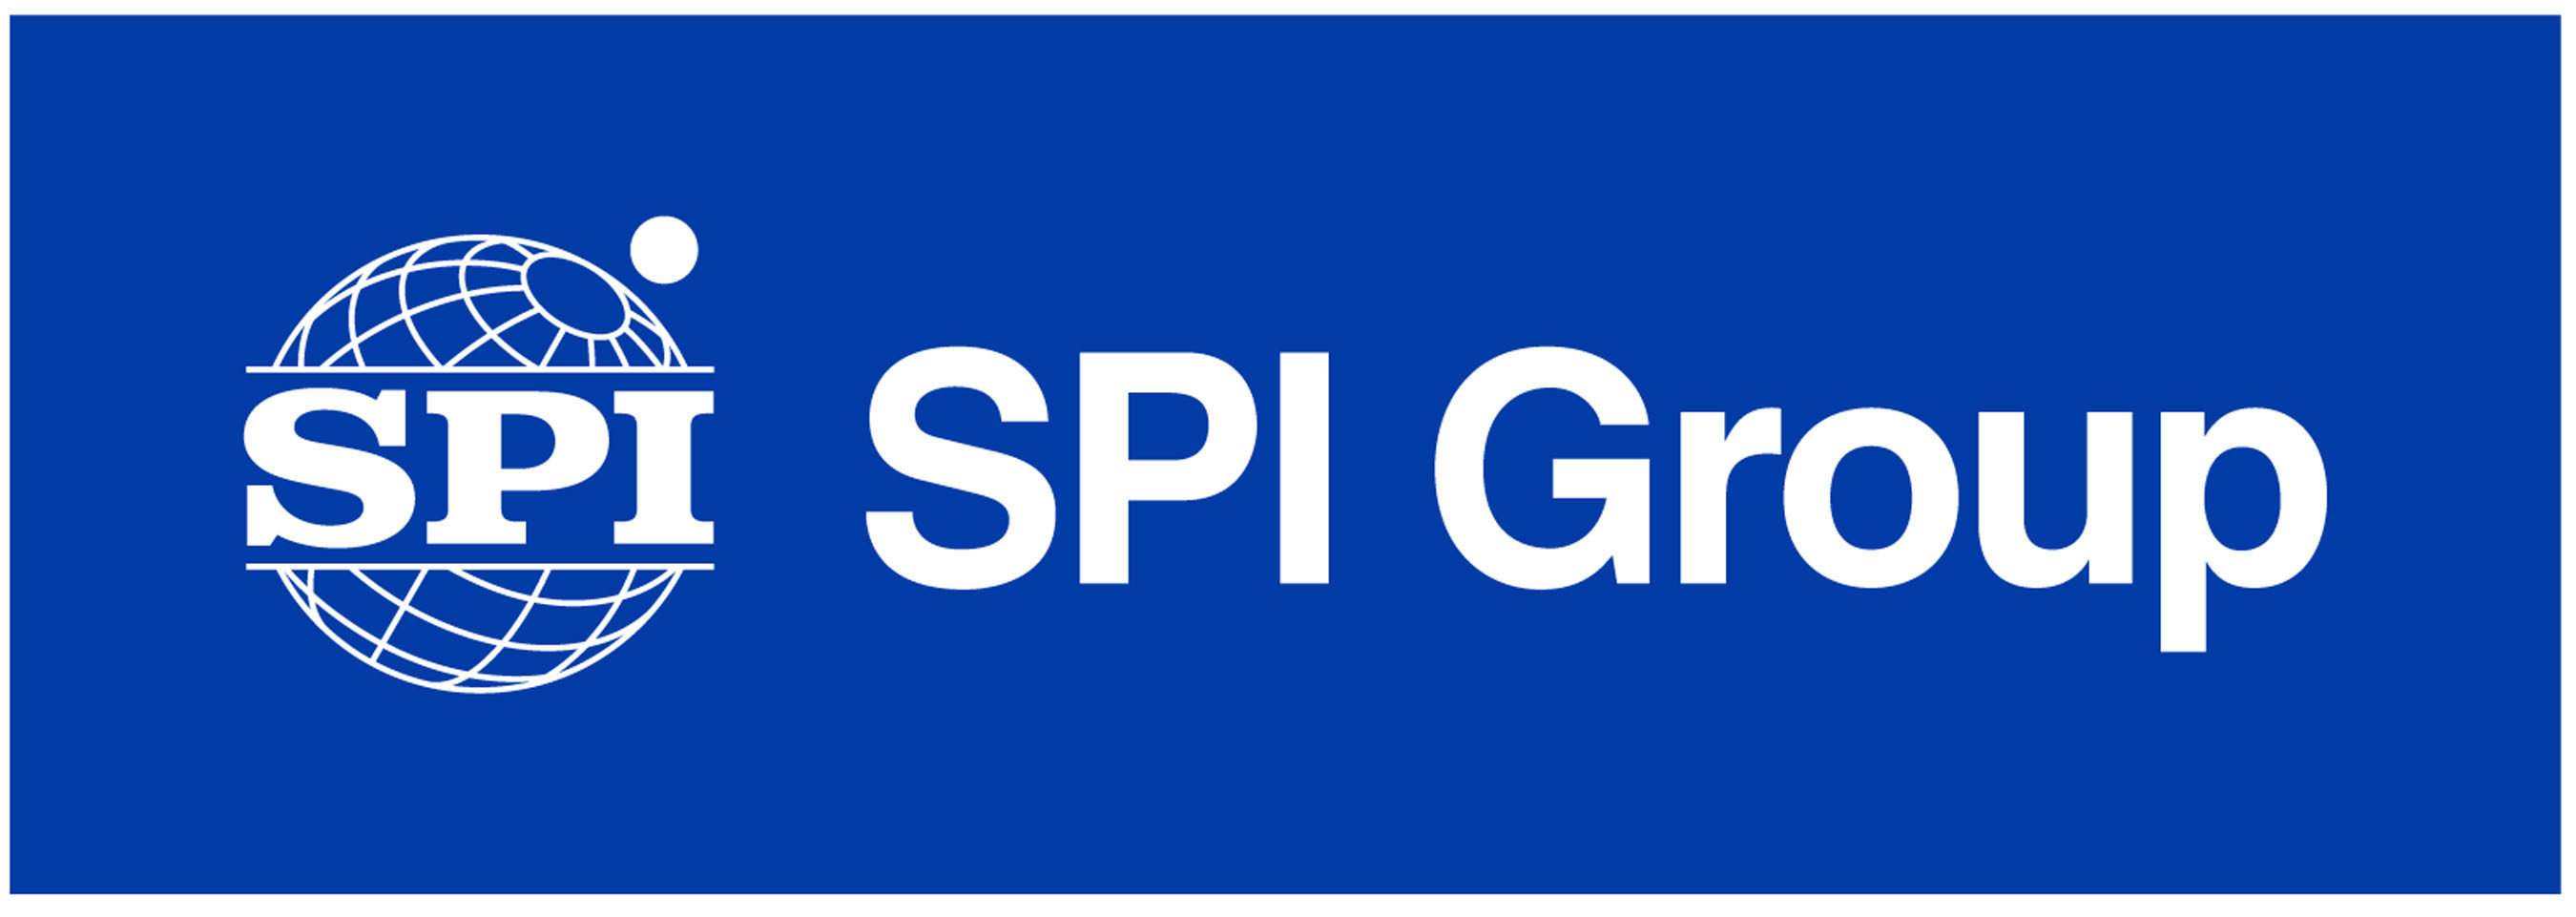 The Federal Court of Appeals in Brazil announces decision in favor of SPI in long-running Stoli trademark dispute.